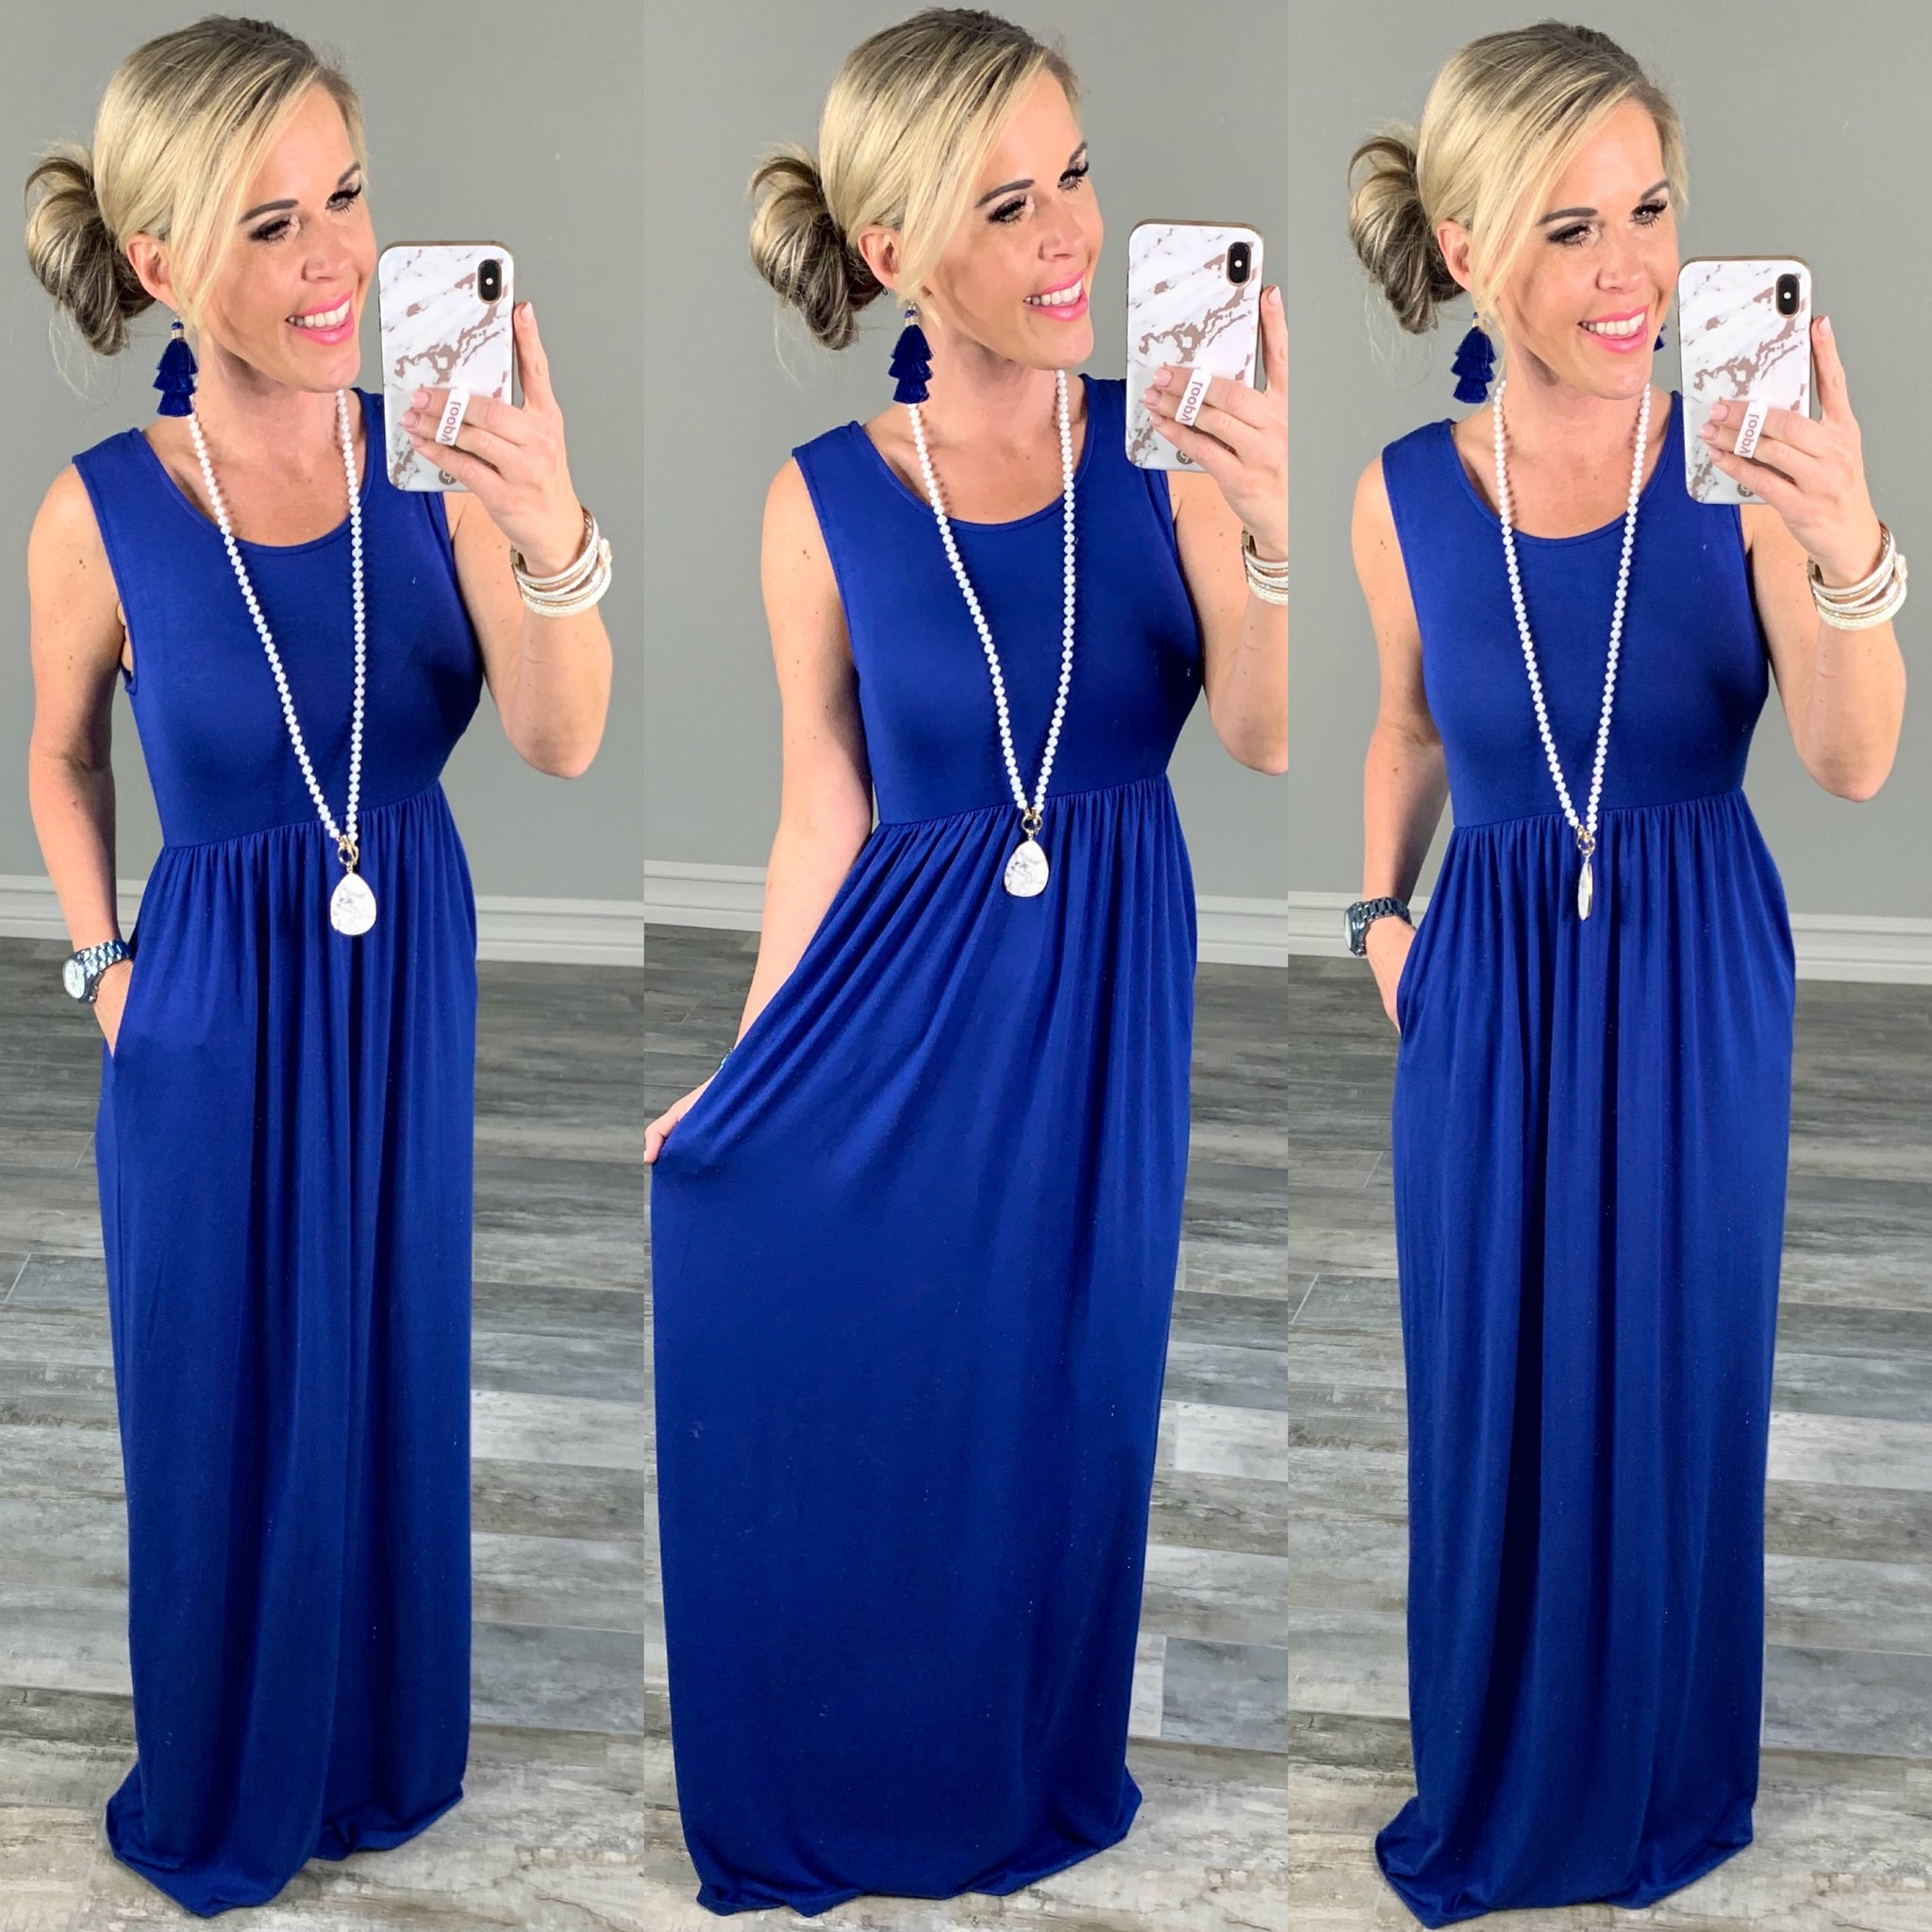 I'll Be By the Pool Maxi Dress - Royal